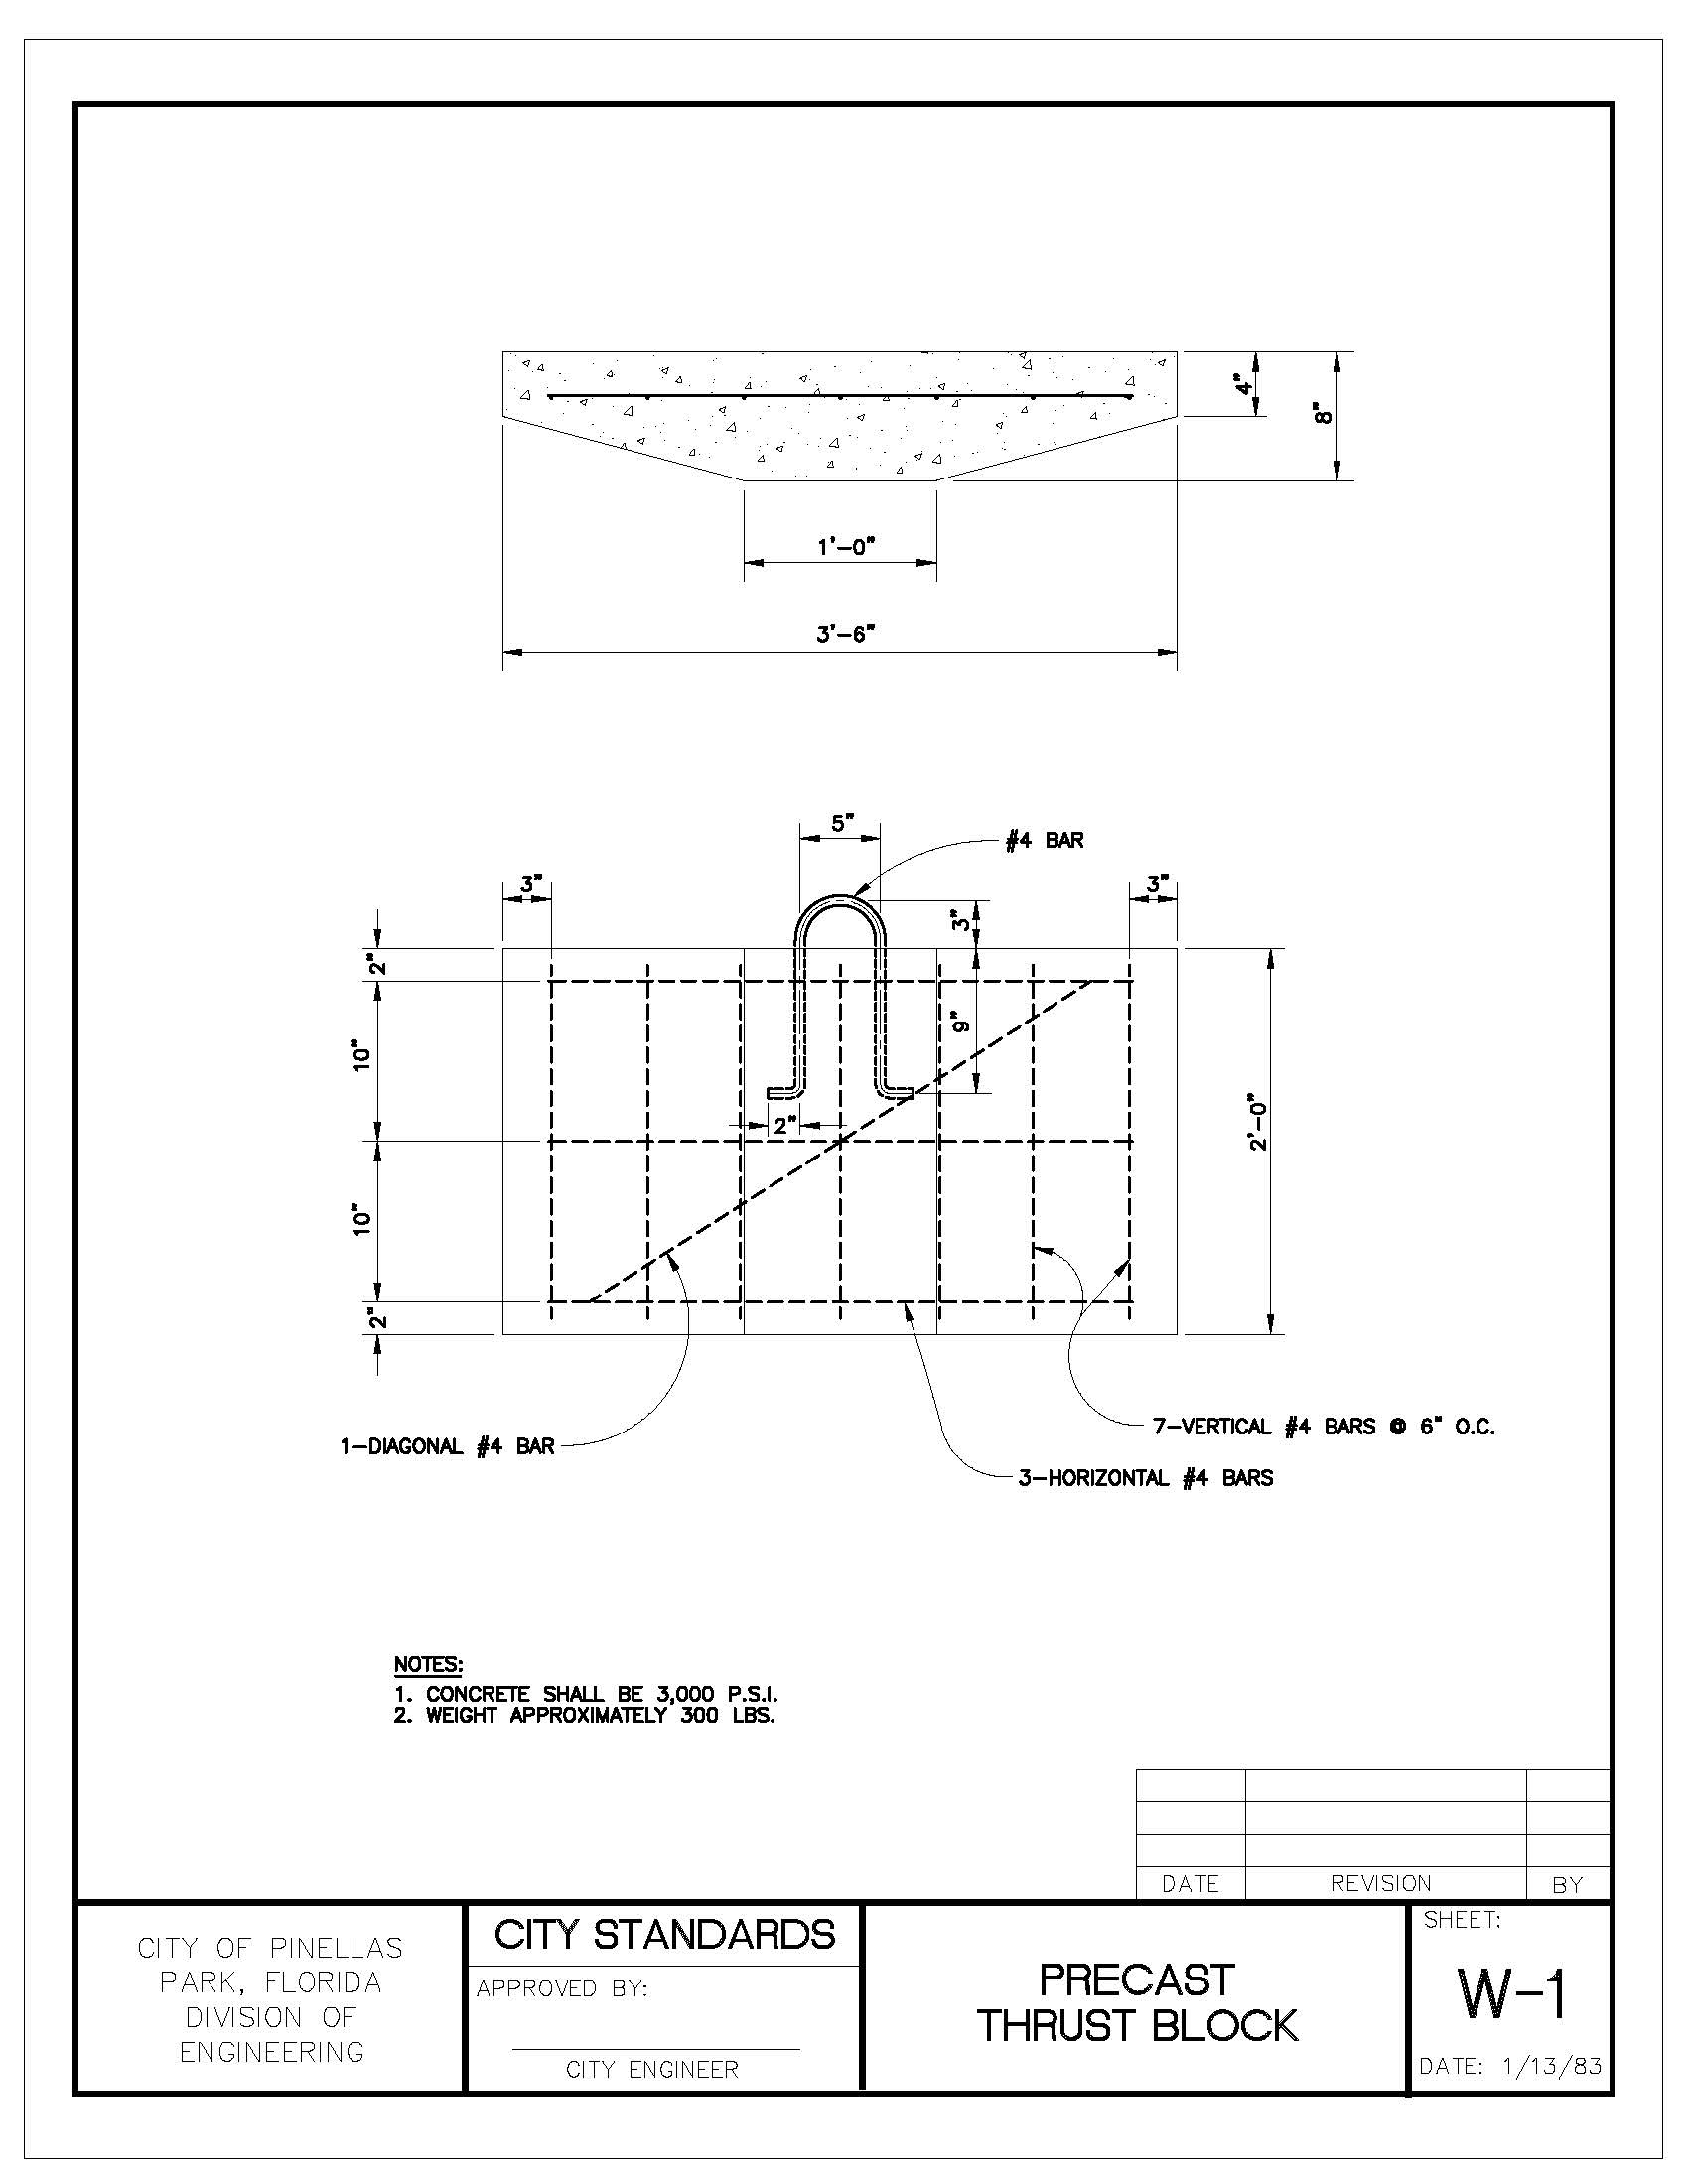 Engineering Manual v5_201908121127291138_Page_075 precast thrust block